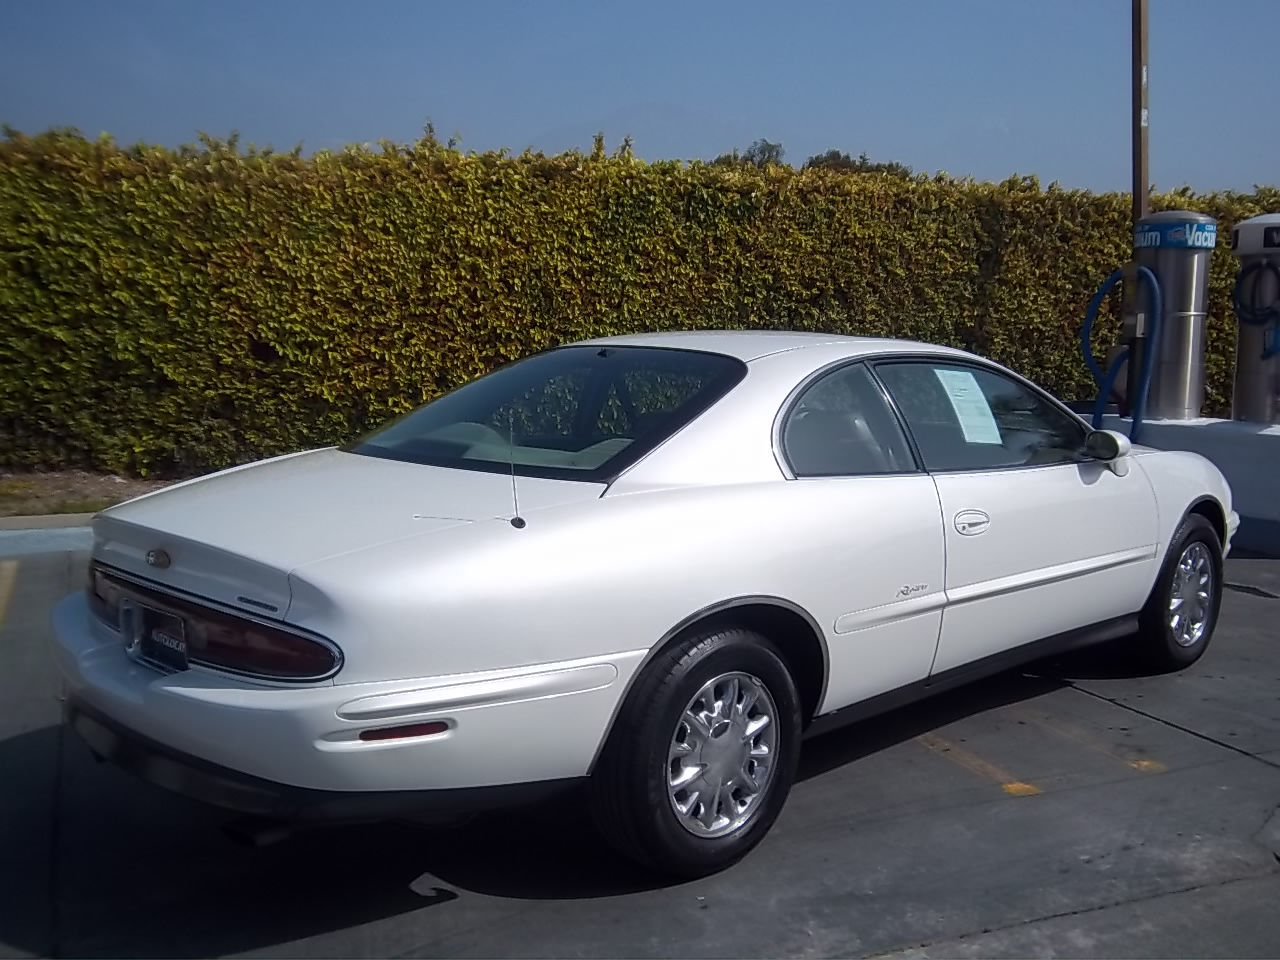 1996 Buick Riviera - Pictures